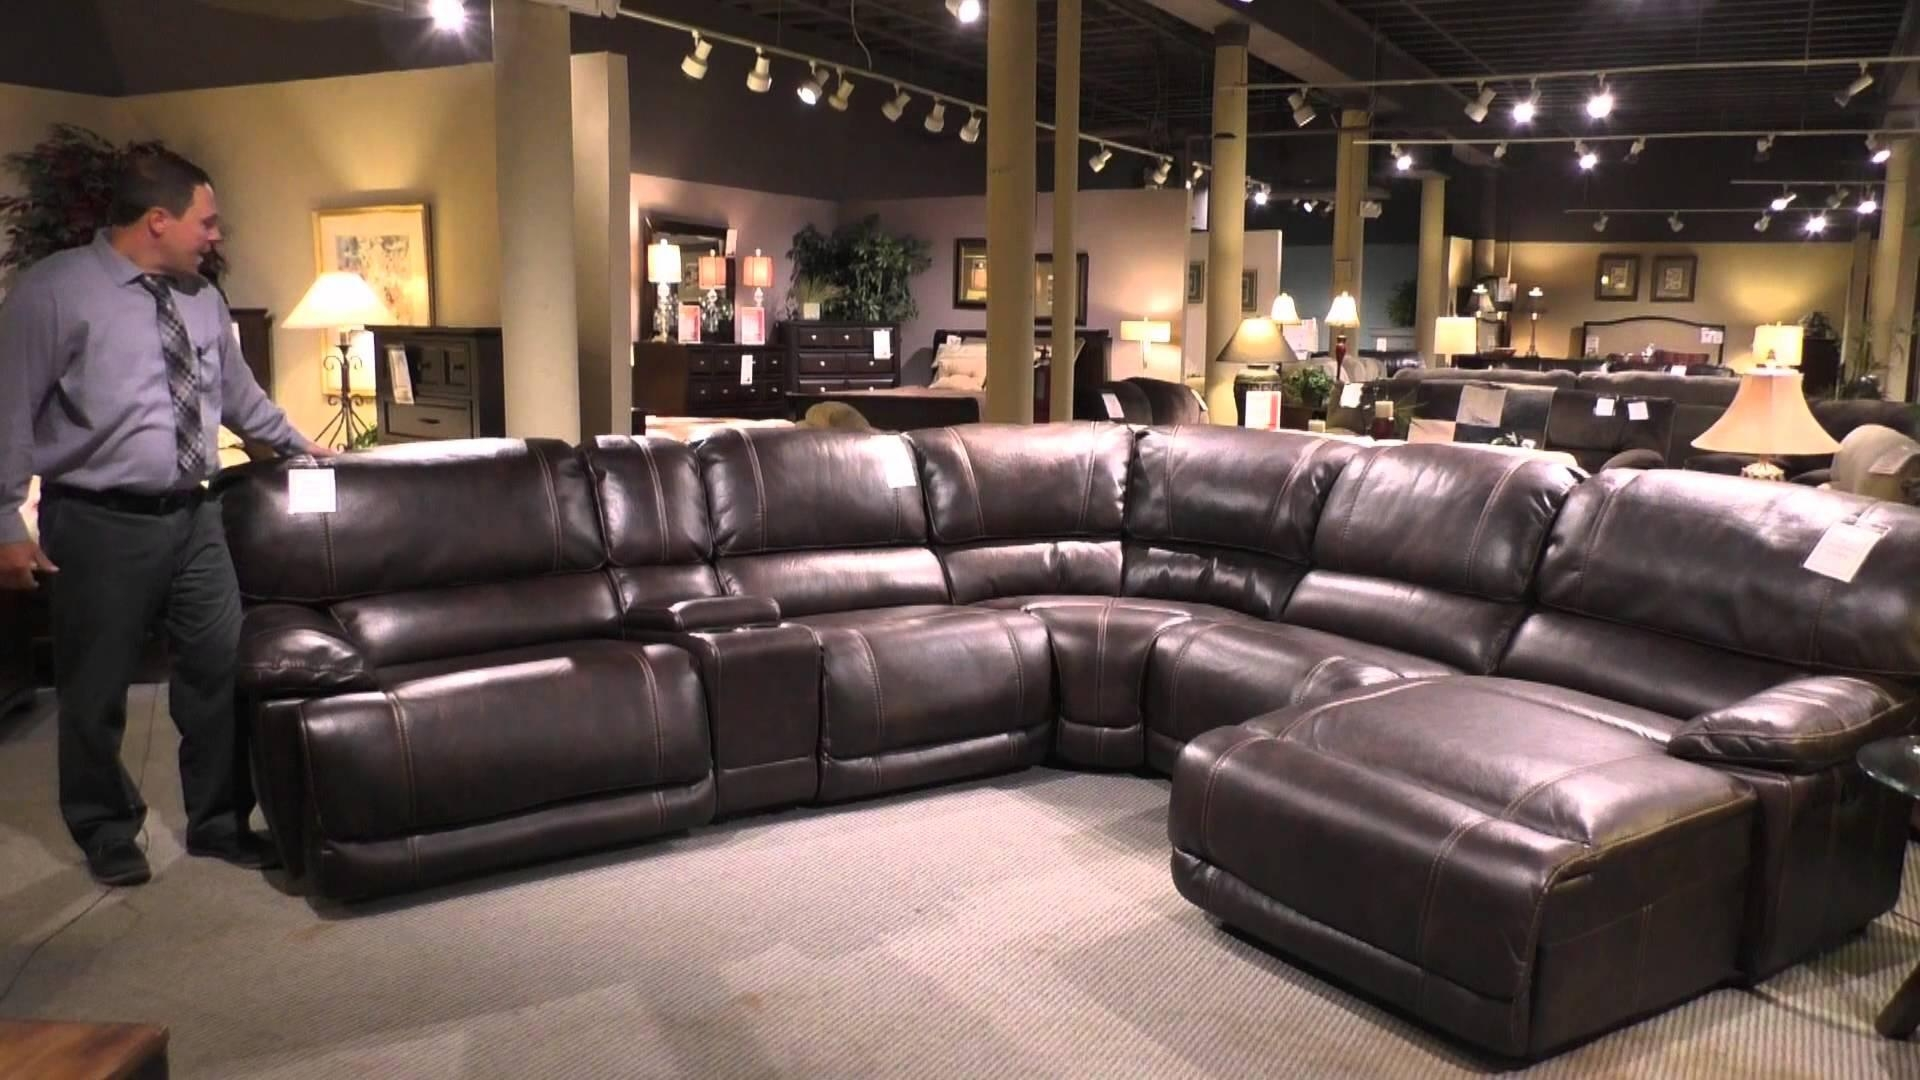 Cheers Leather Sofa 58 With Cheers Leather Sofa | Jinanhongyu For Cheers Leather Sofas (Image 5 of 20)